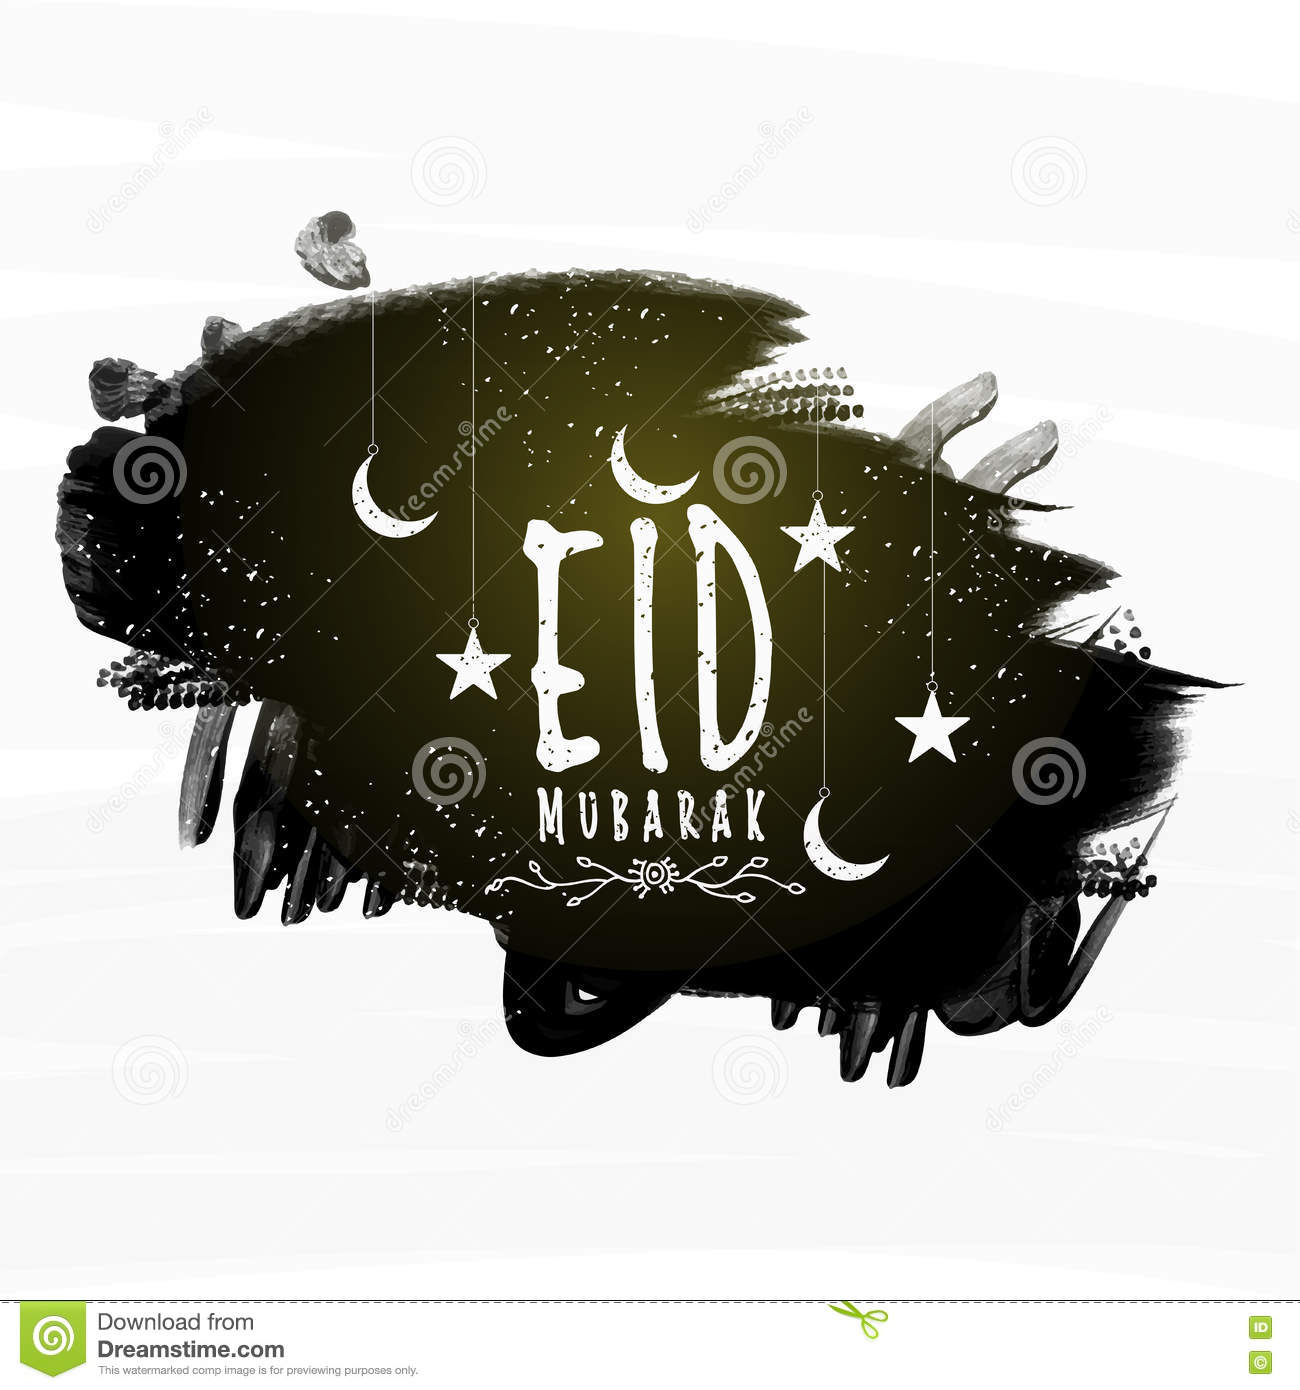 Eid Mubarak Celebration With Crescent Moon And Stars